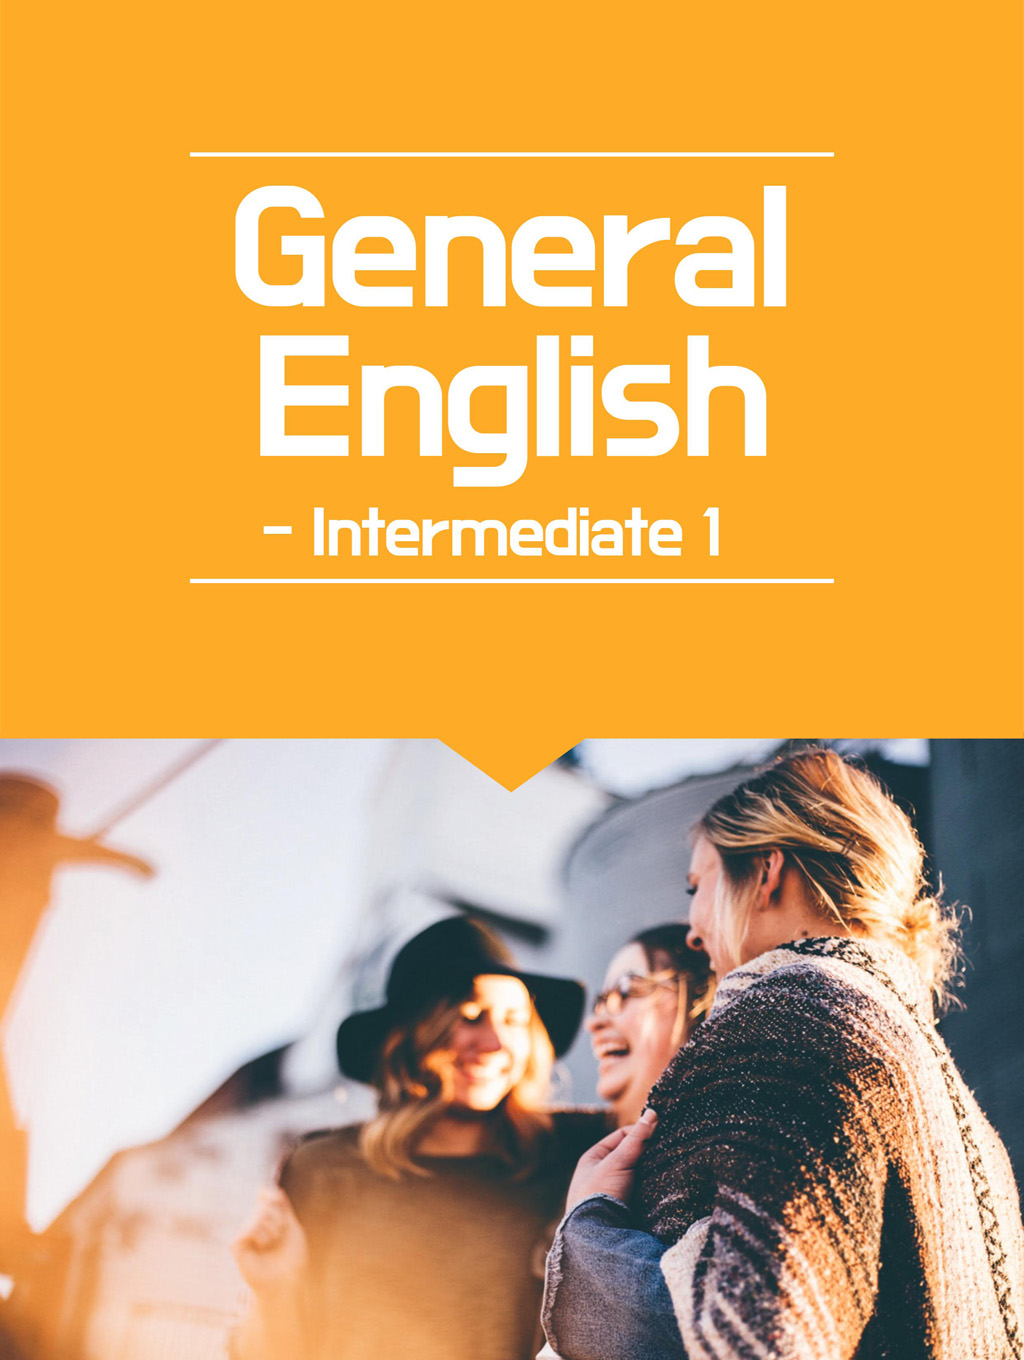 General English - Intermediate 1